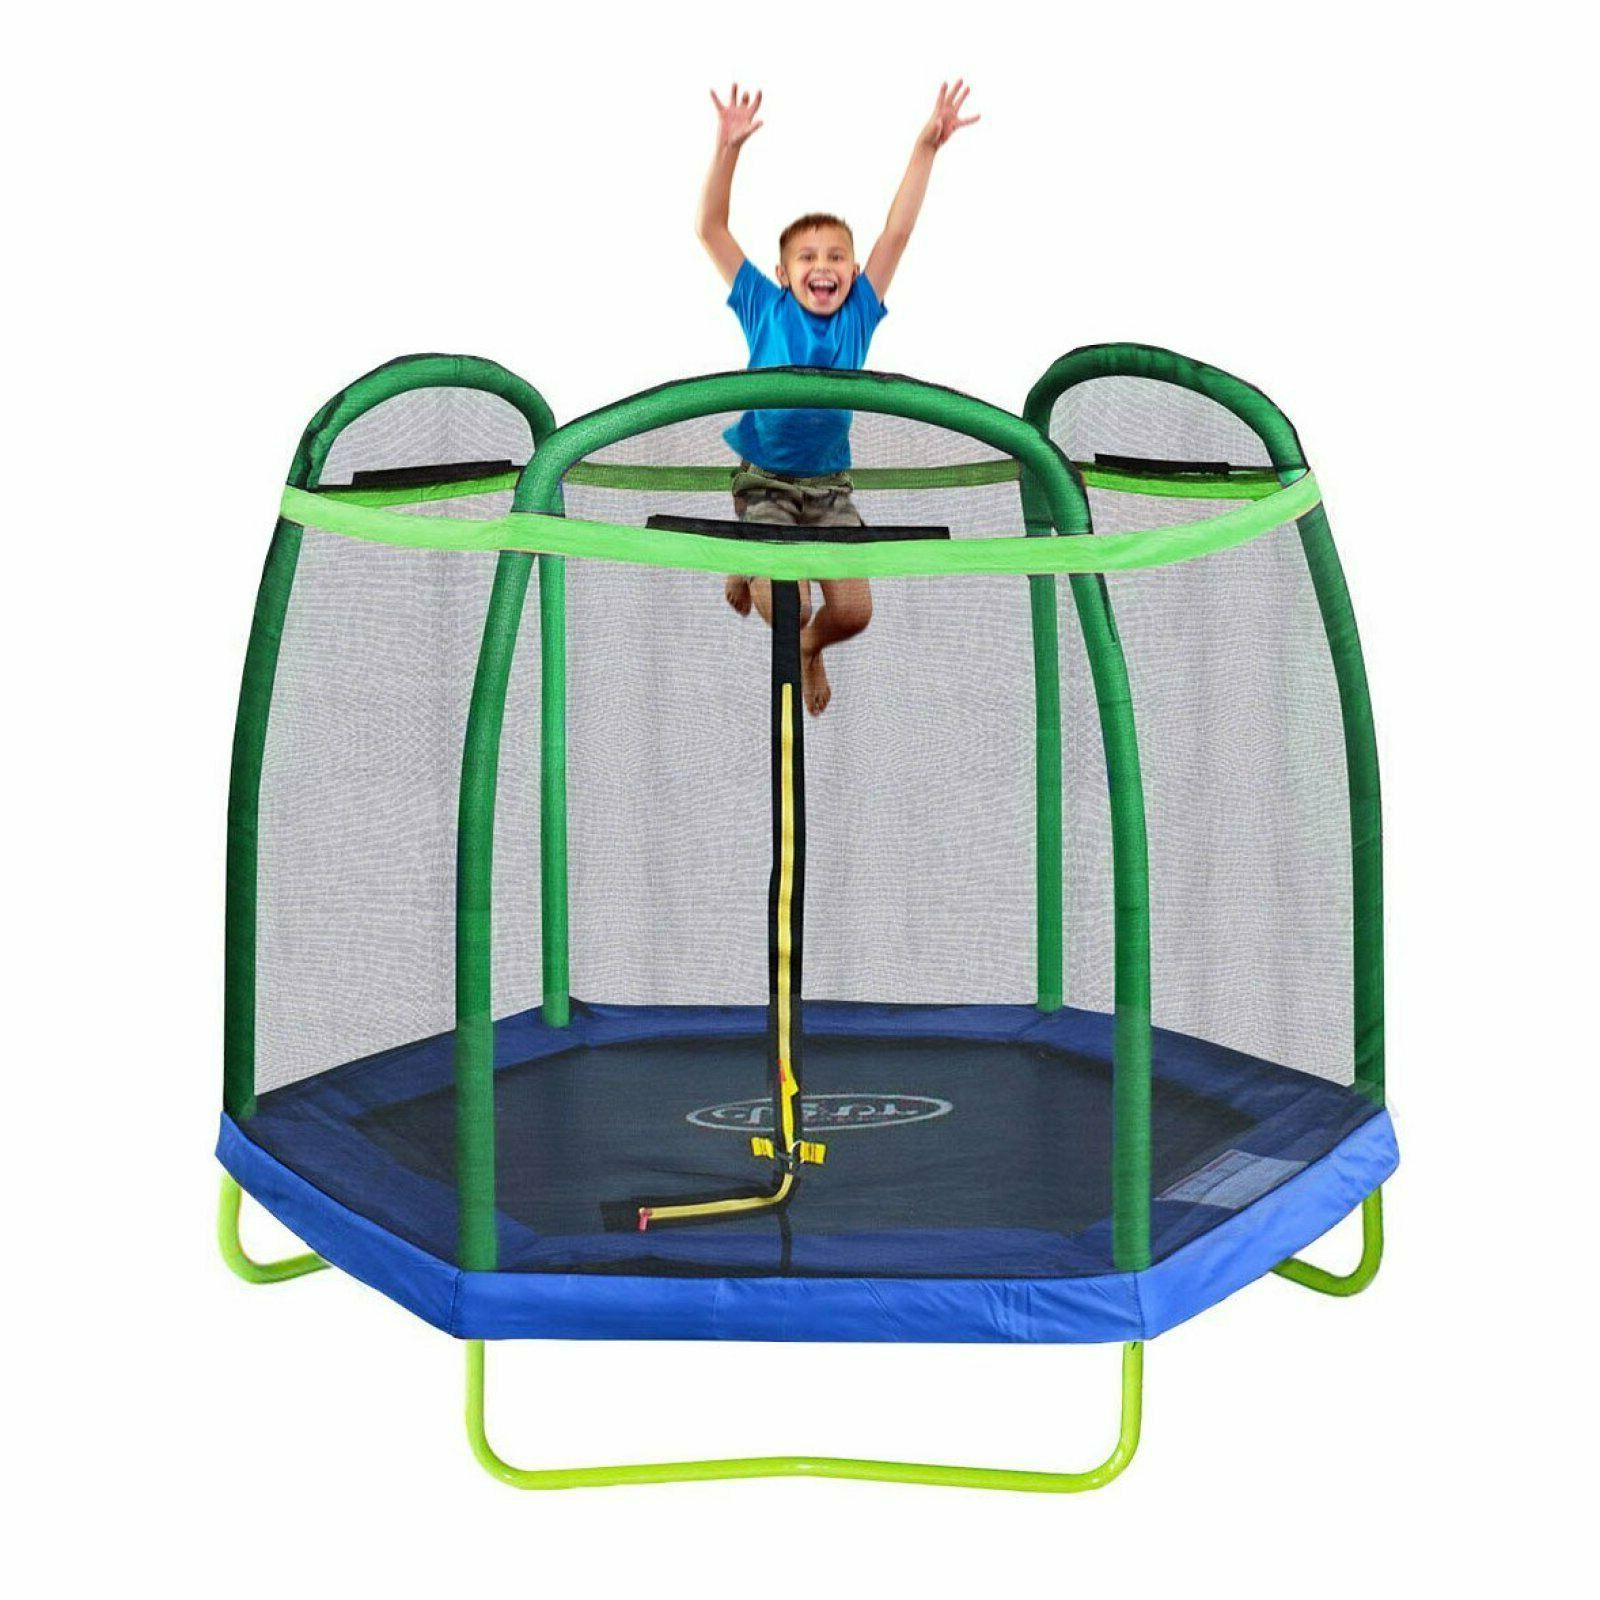 Trampoline Bouncing Outdoor Fun Toys For Kids Backyard Sport